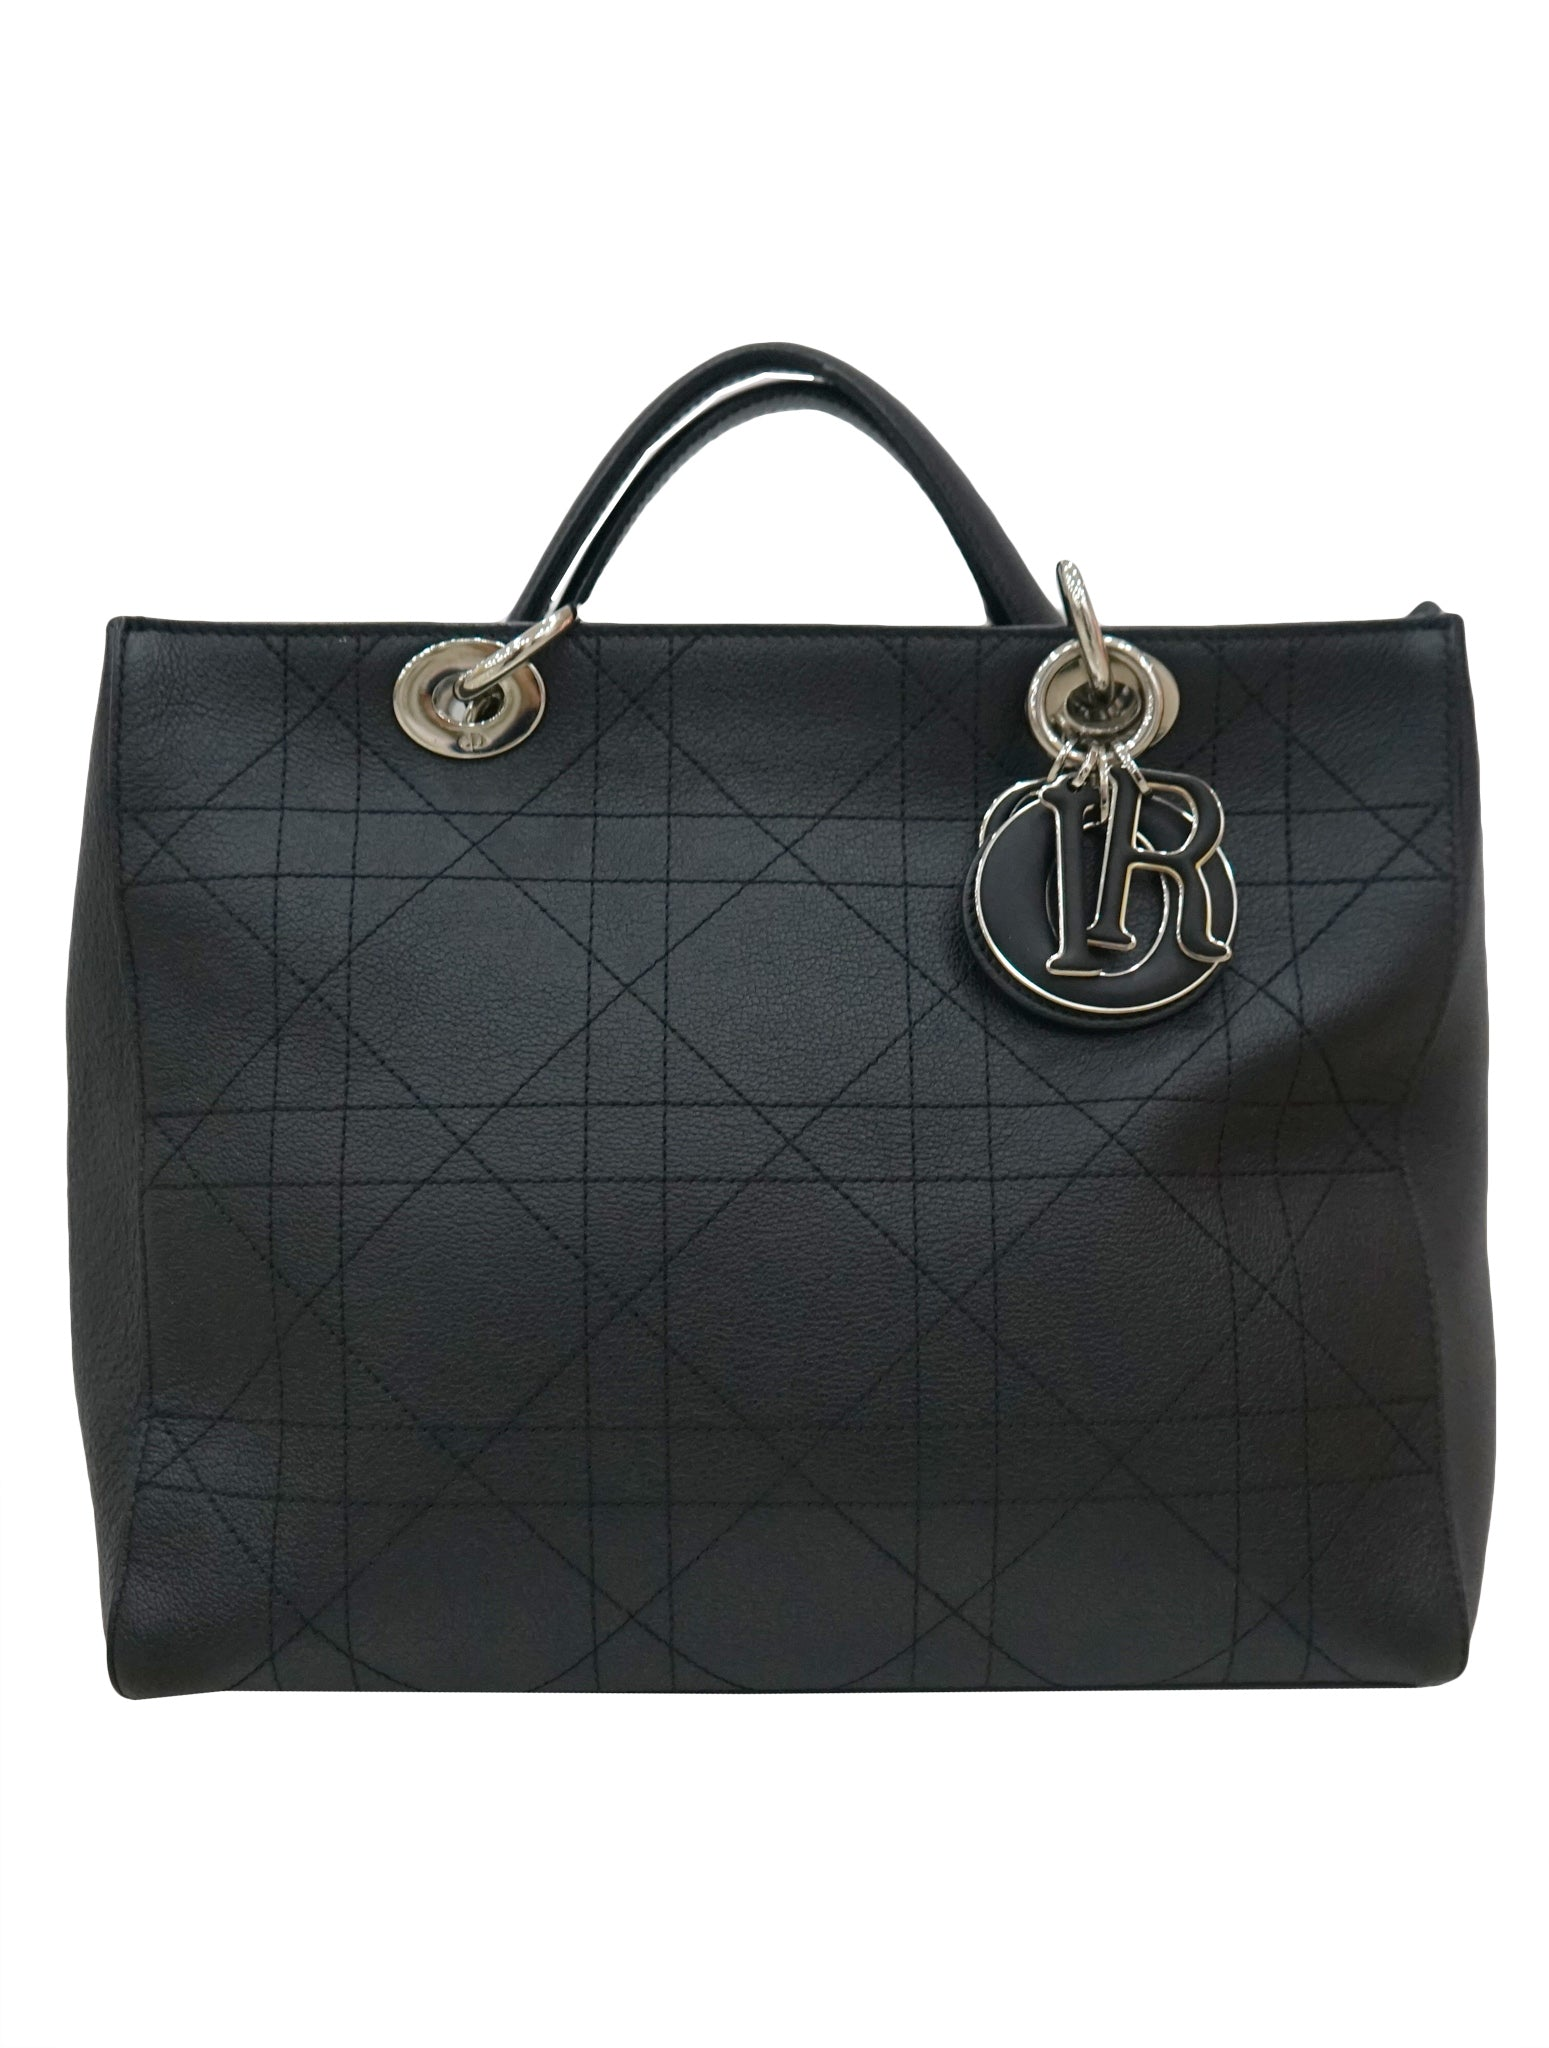 ULTRADIOR CANNAGE SHOPPING BAG